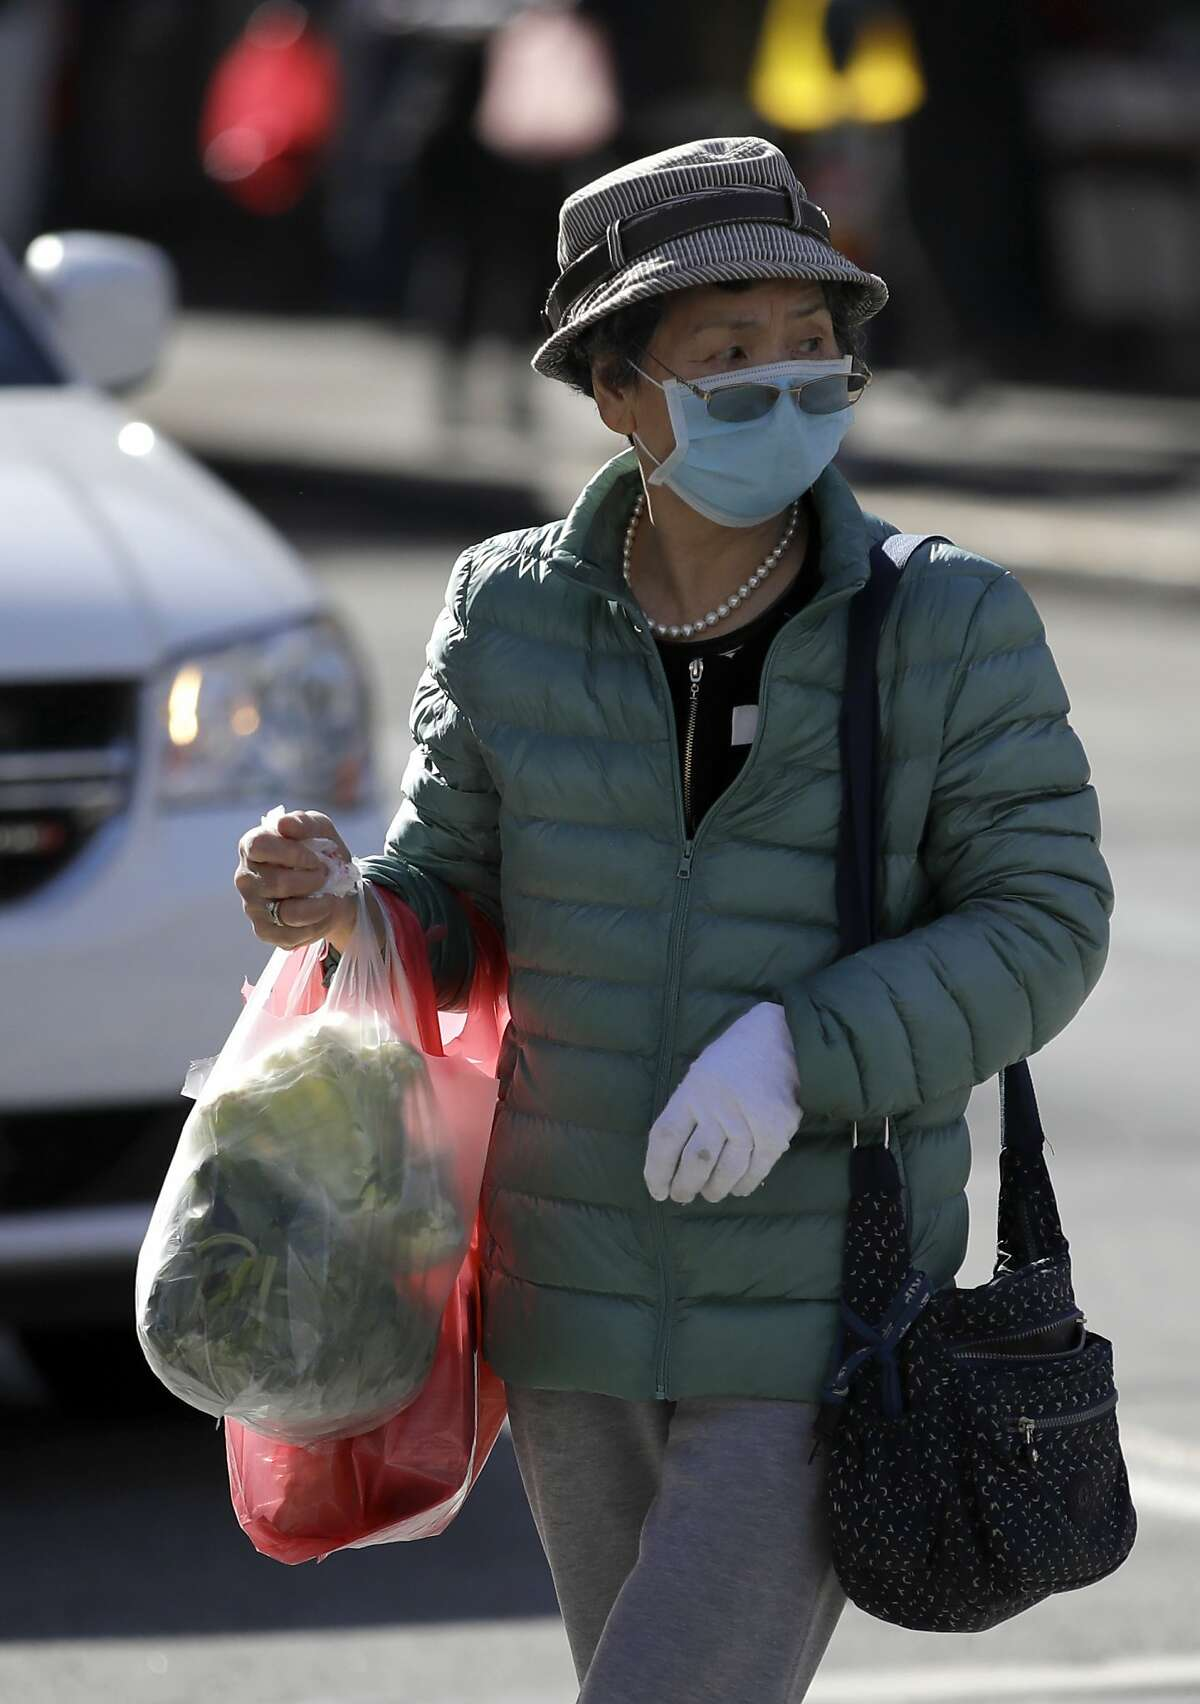 A masked shopper walks across a street Friday, Jan. 31, 2020, in the Chinatown district of San Francisco. As China grapples with the growing coronavirus outbreak, Chinese people in California are encountering a cultural disconnect as they brace for a possible spread of the virus in their adopted homeland. (AP Photo/Ben Margot)